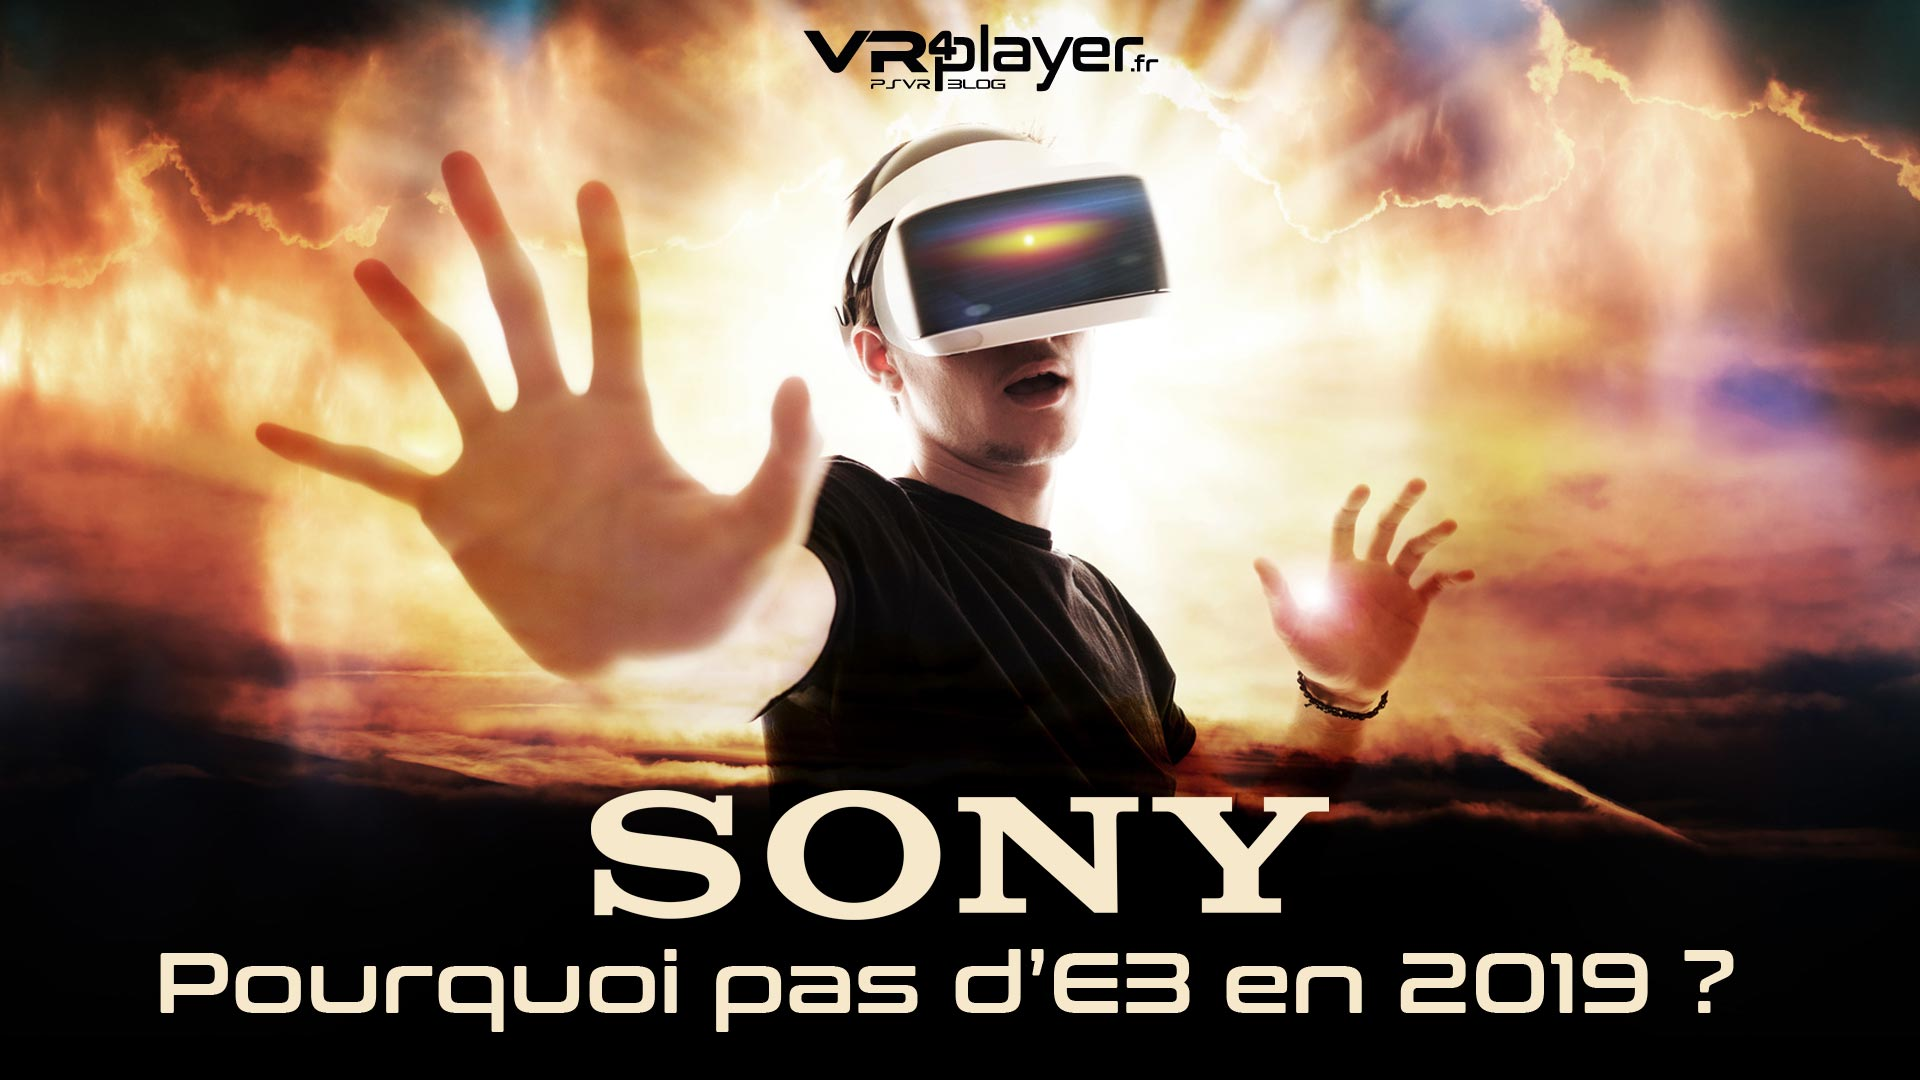 E32019 Sony PlayStation VR4player